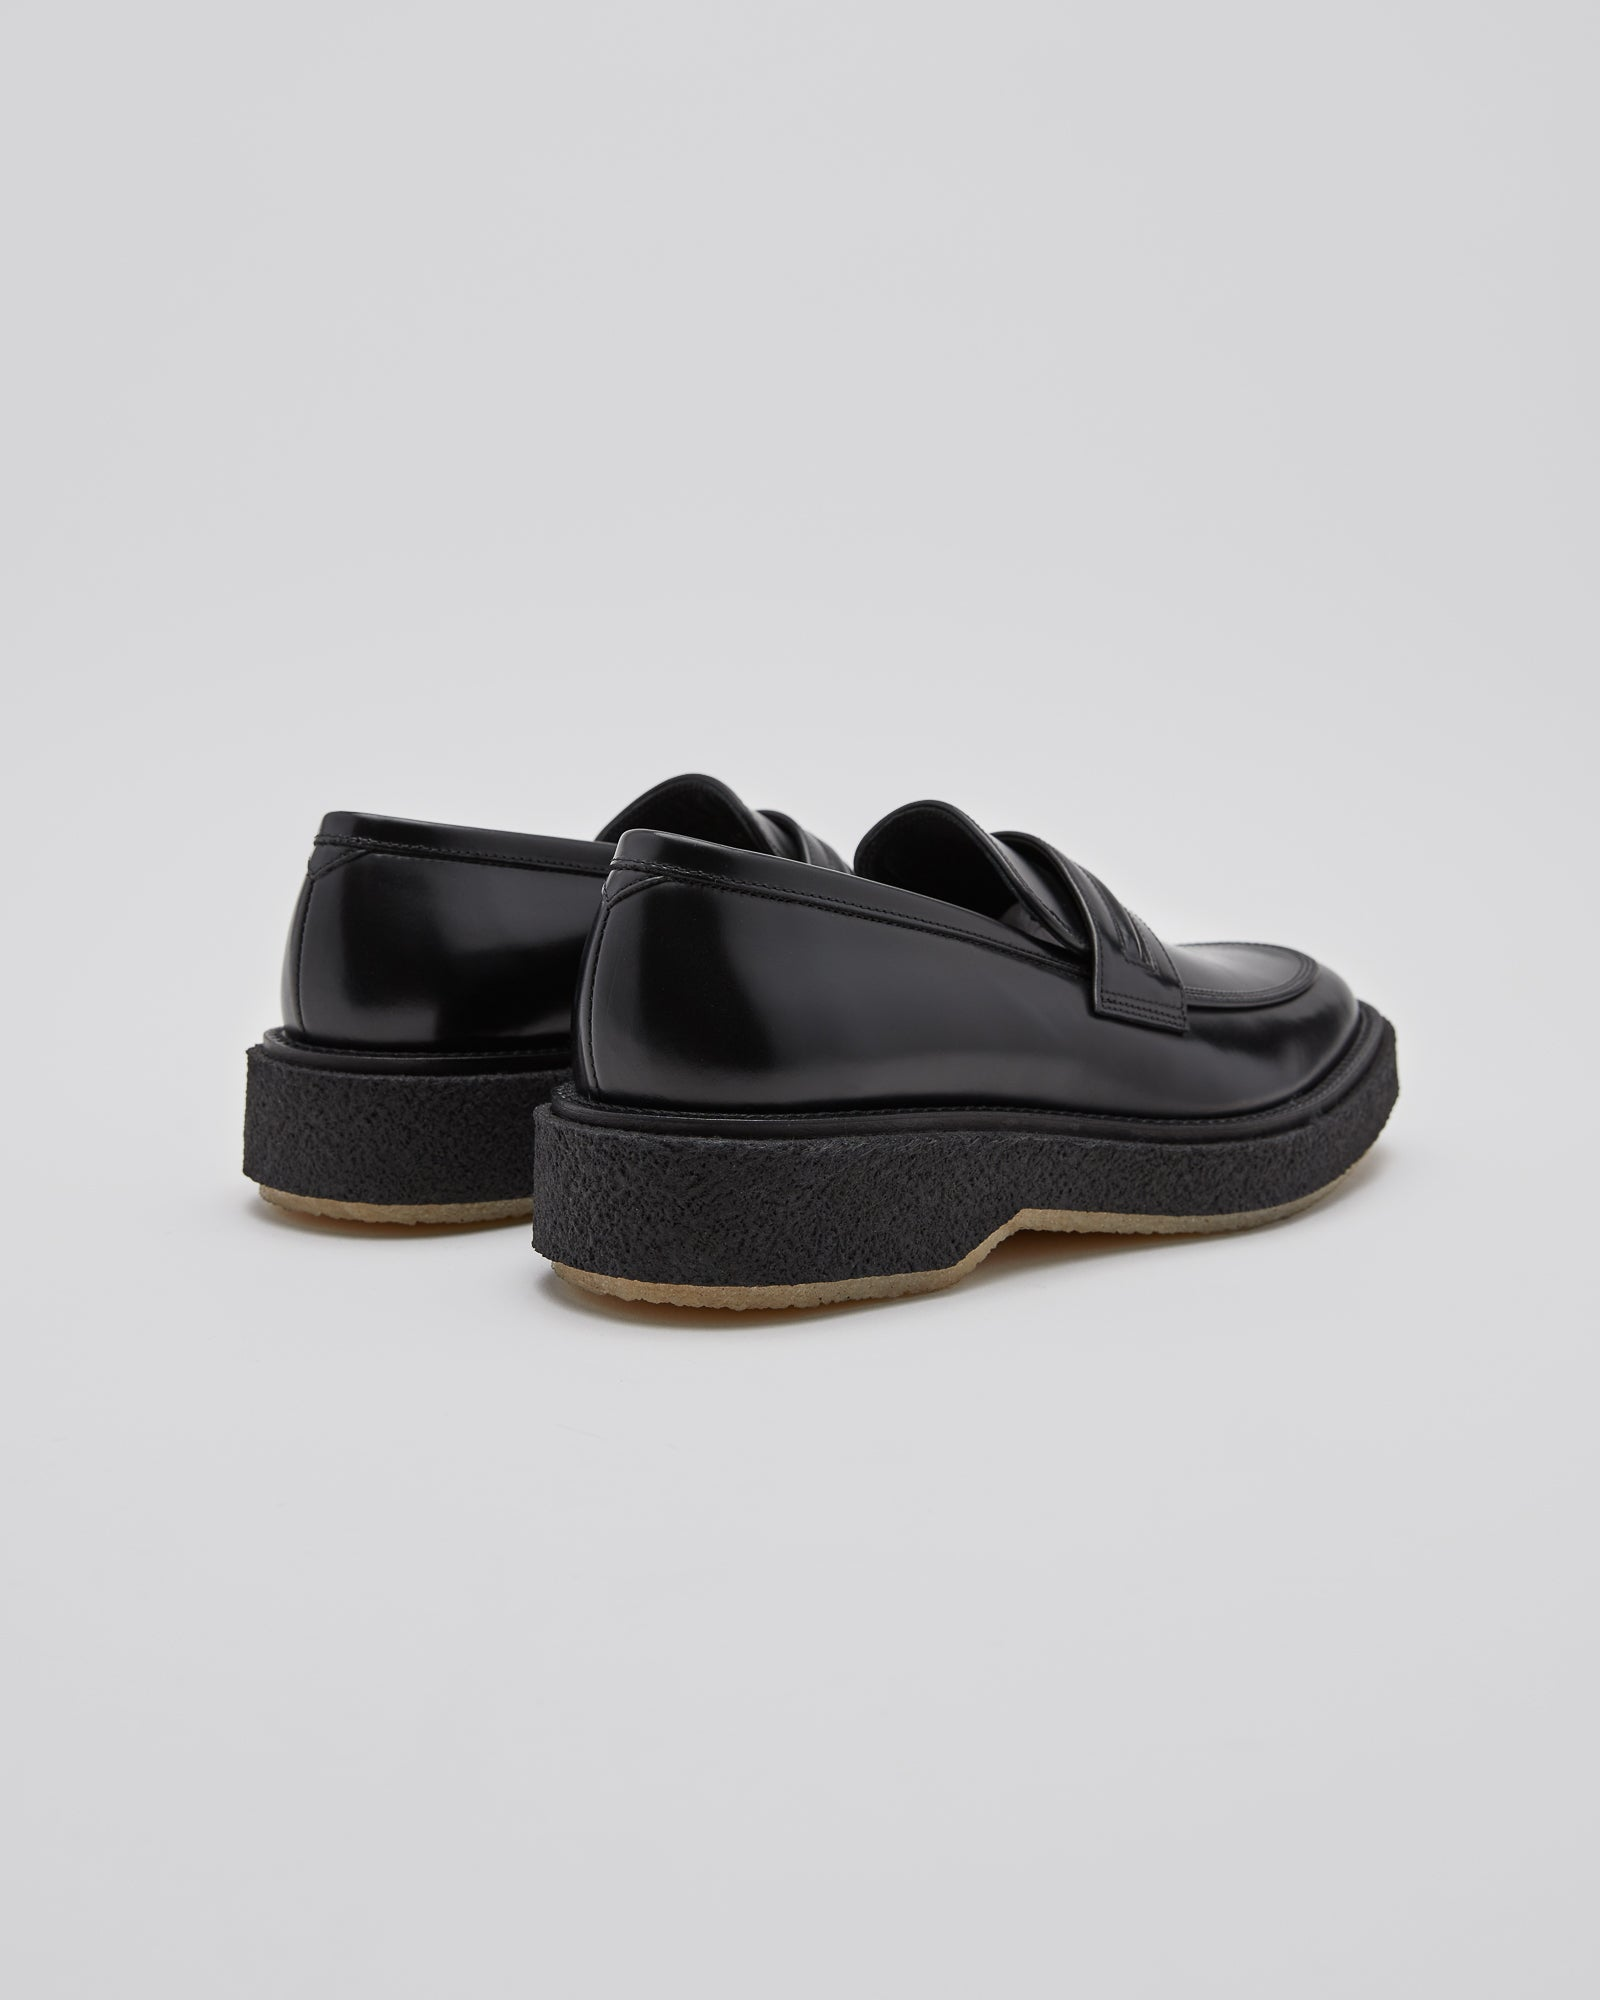 Type 147 Loafer in Black/Crepe